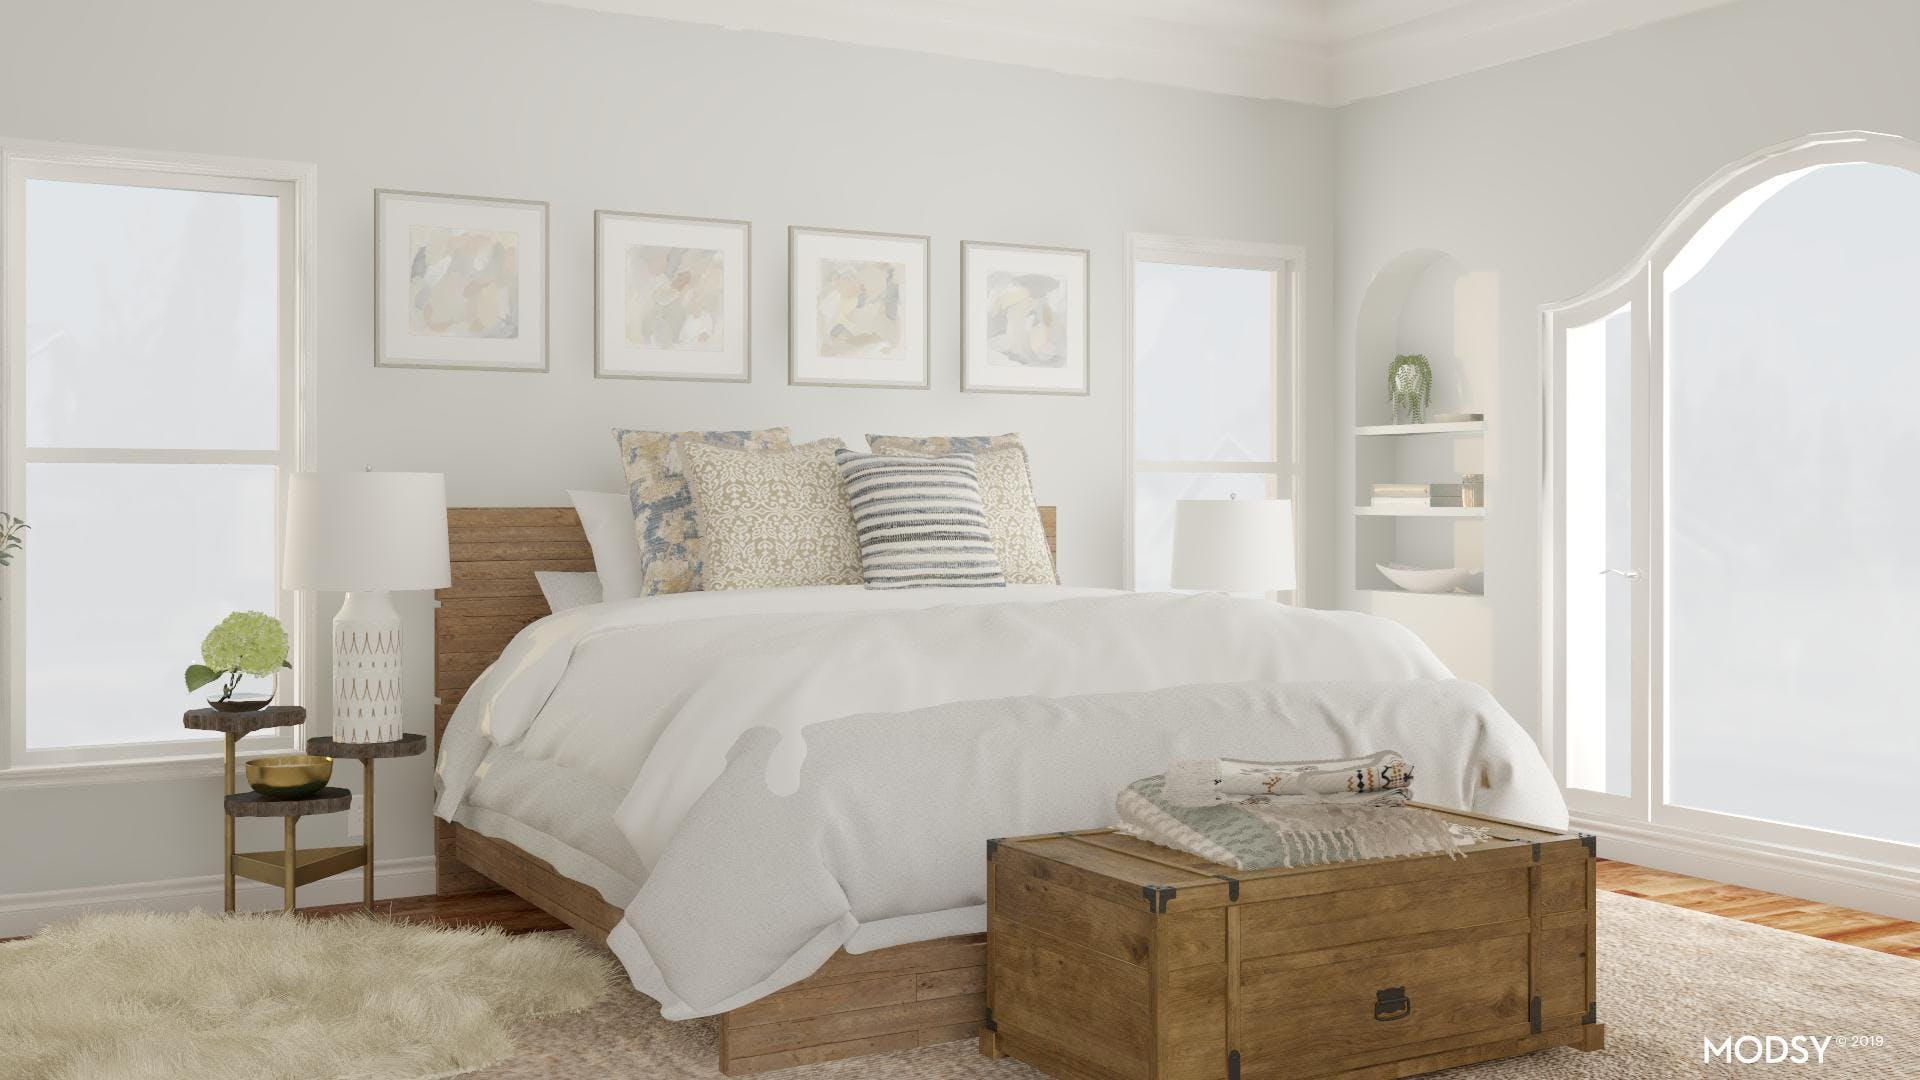 Neutral, Cozy and Rustic